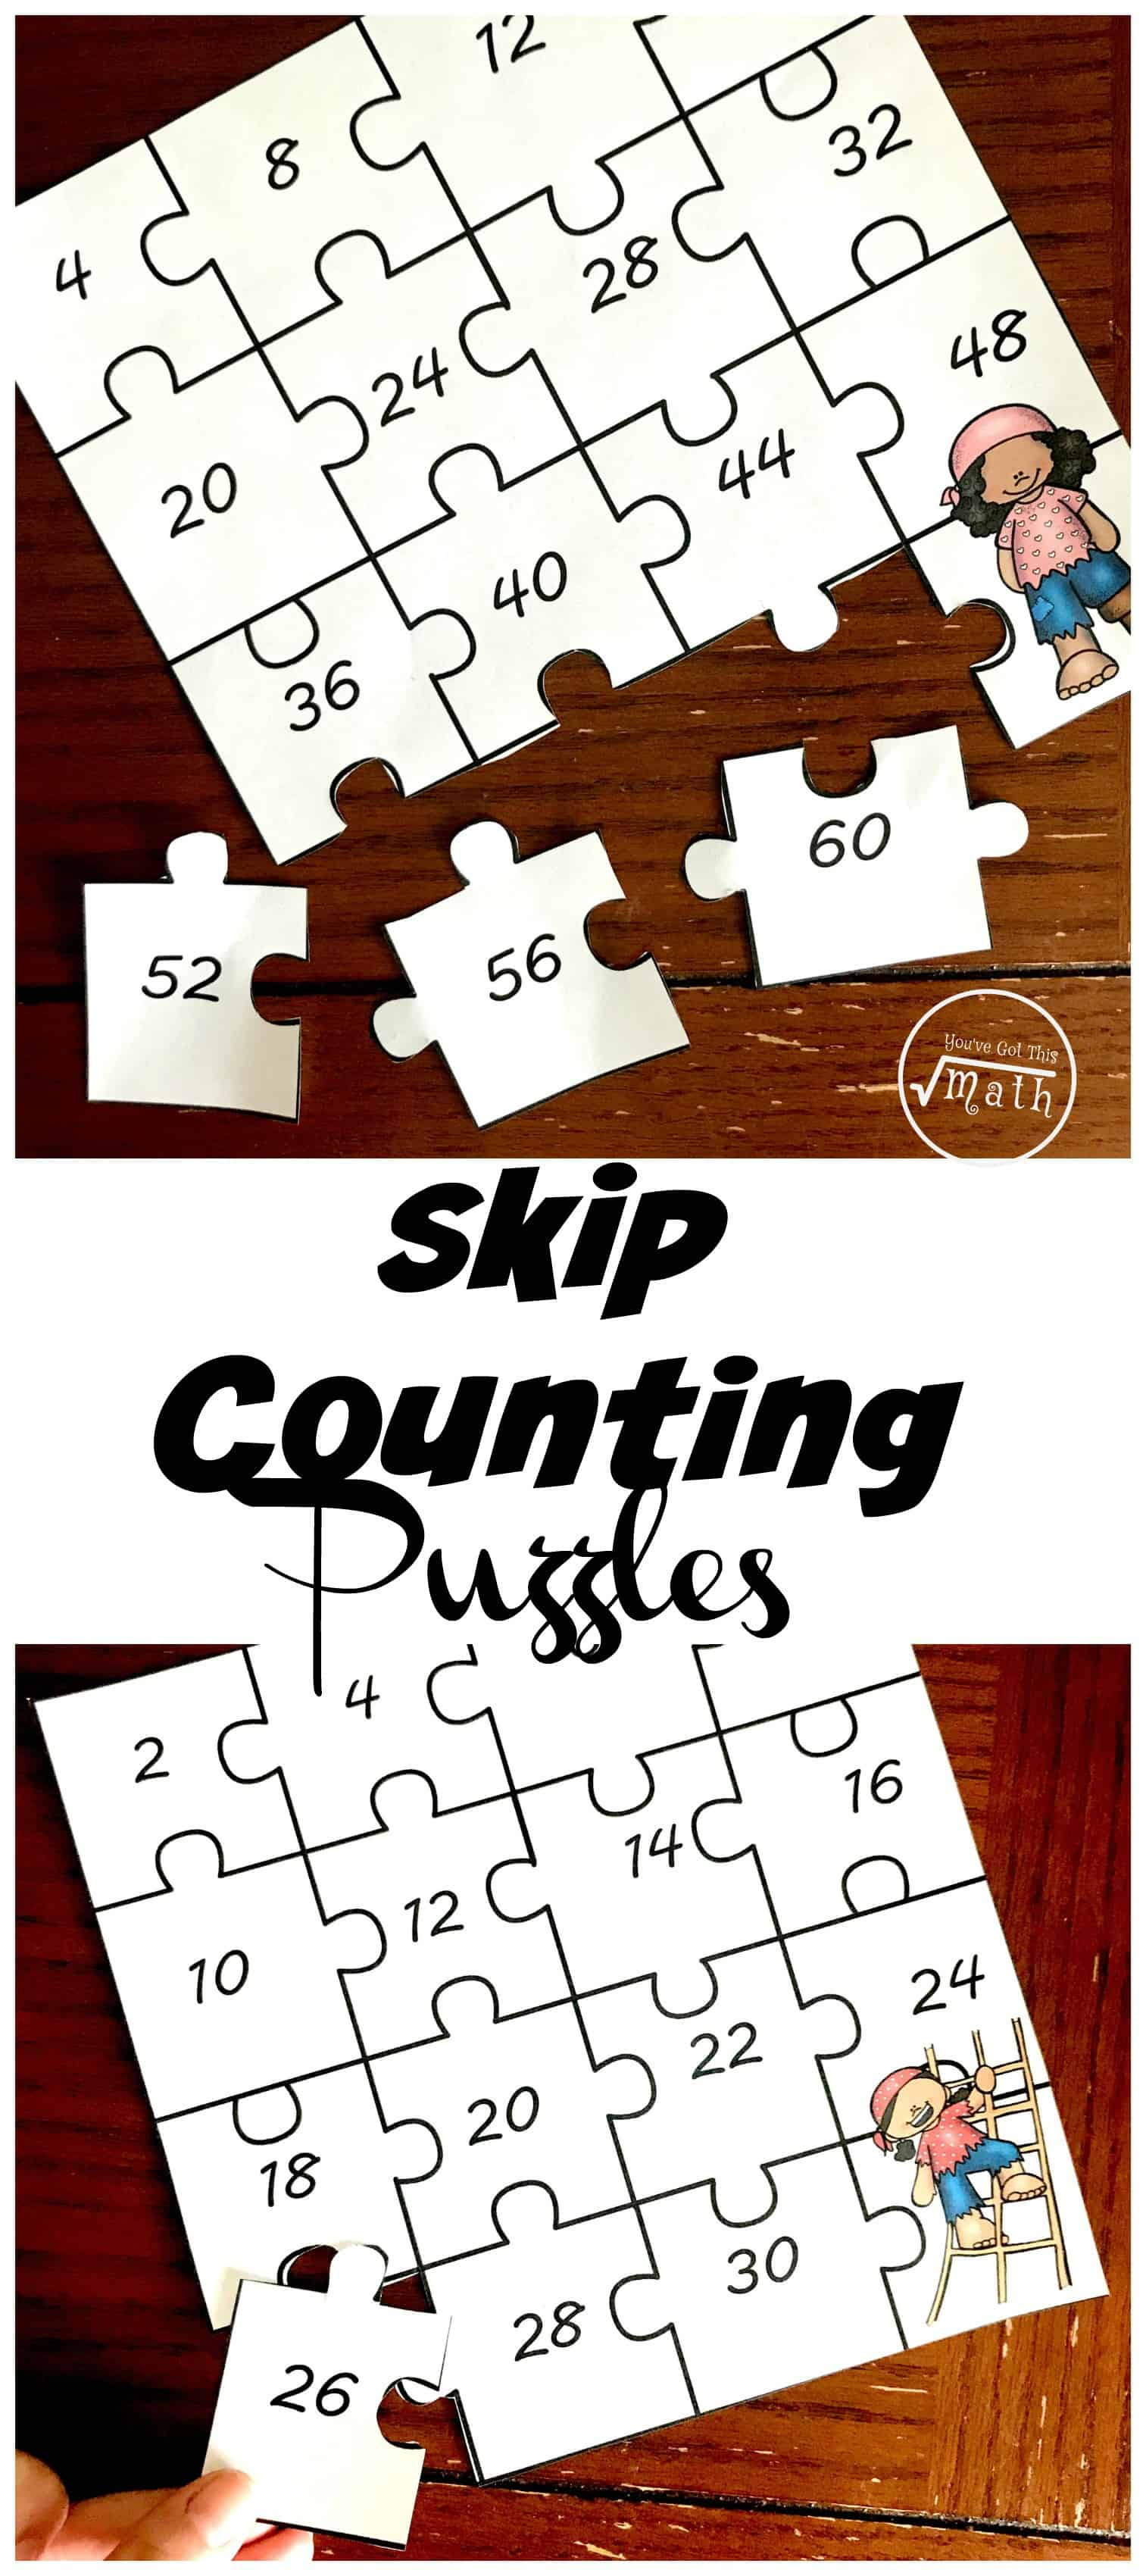 Do yourchildren love puzzles? Then these skipcounting puzzles are a wonderful way to practice skip counting and build some schema for multiplication times tables.